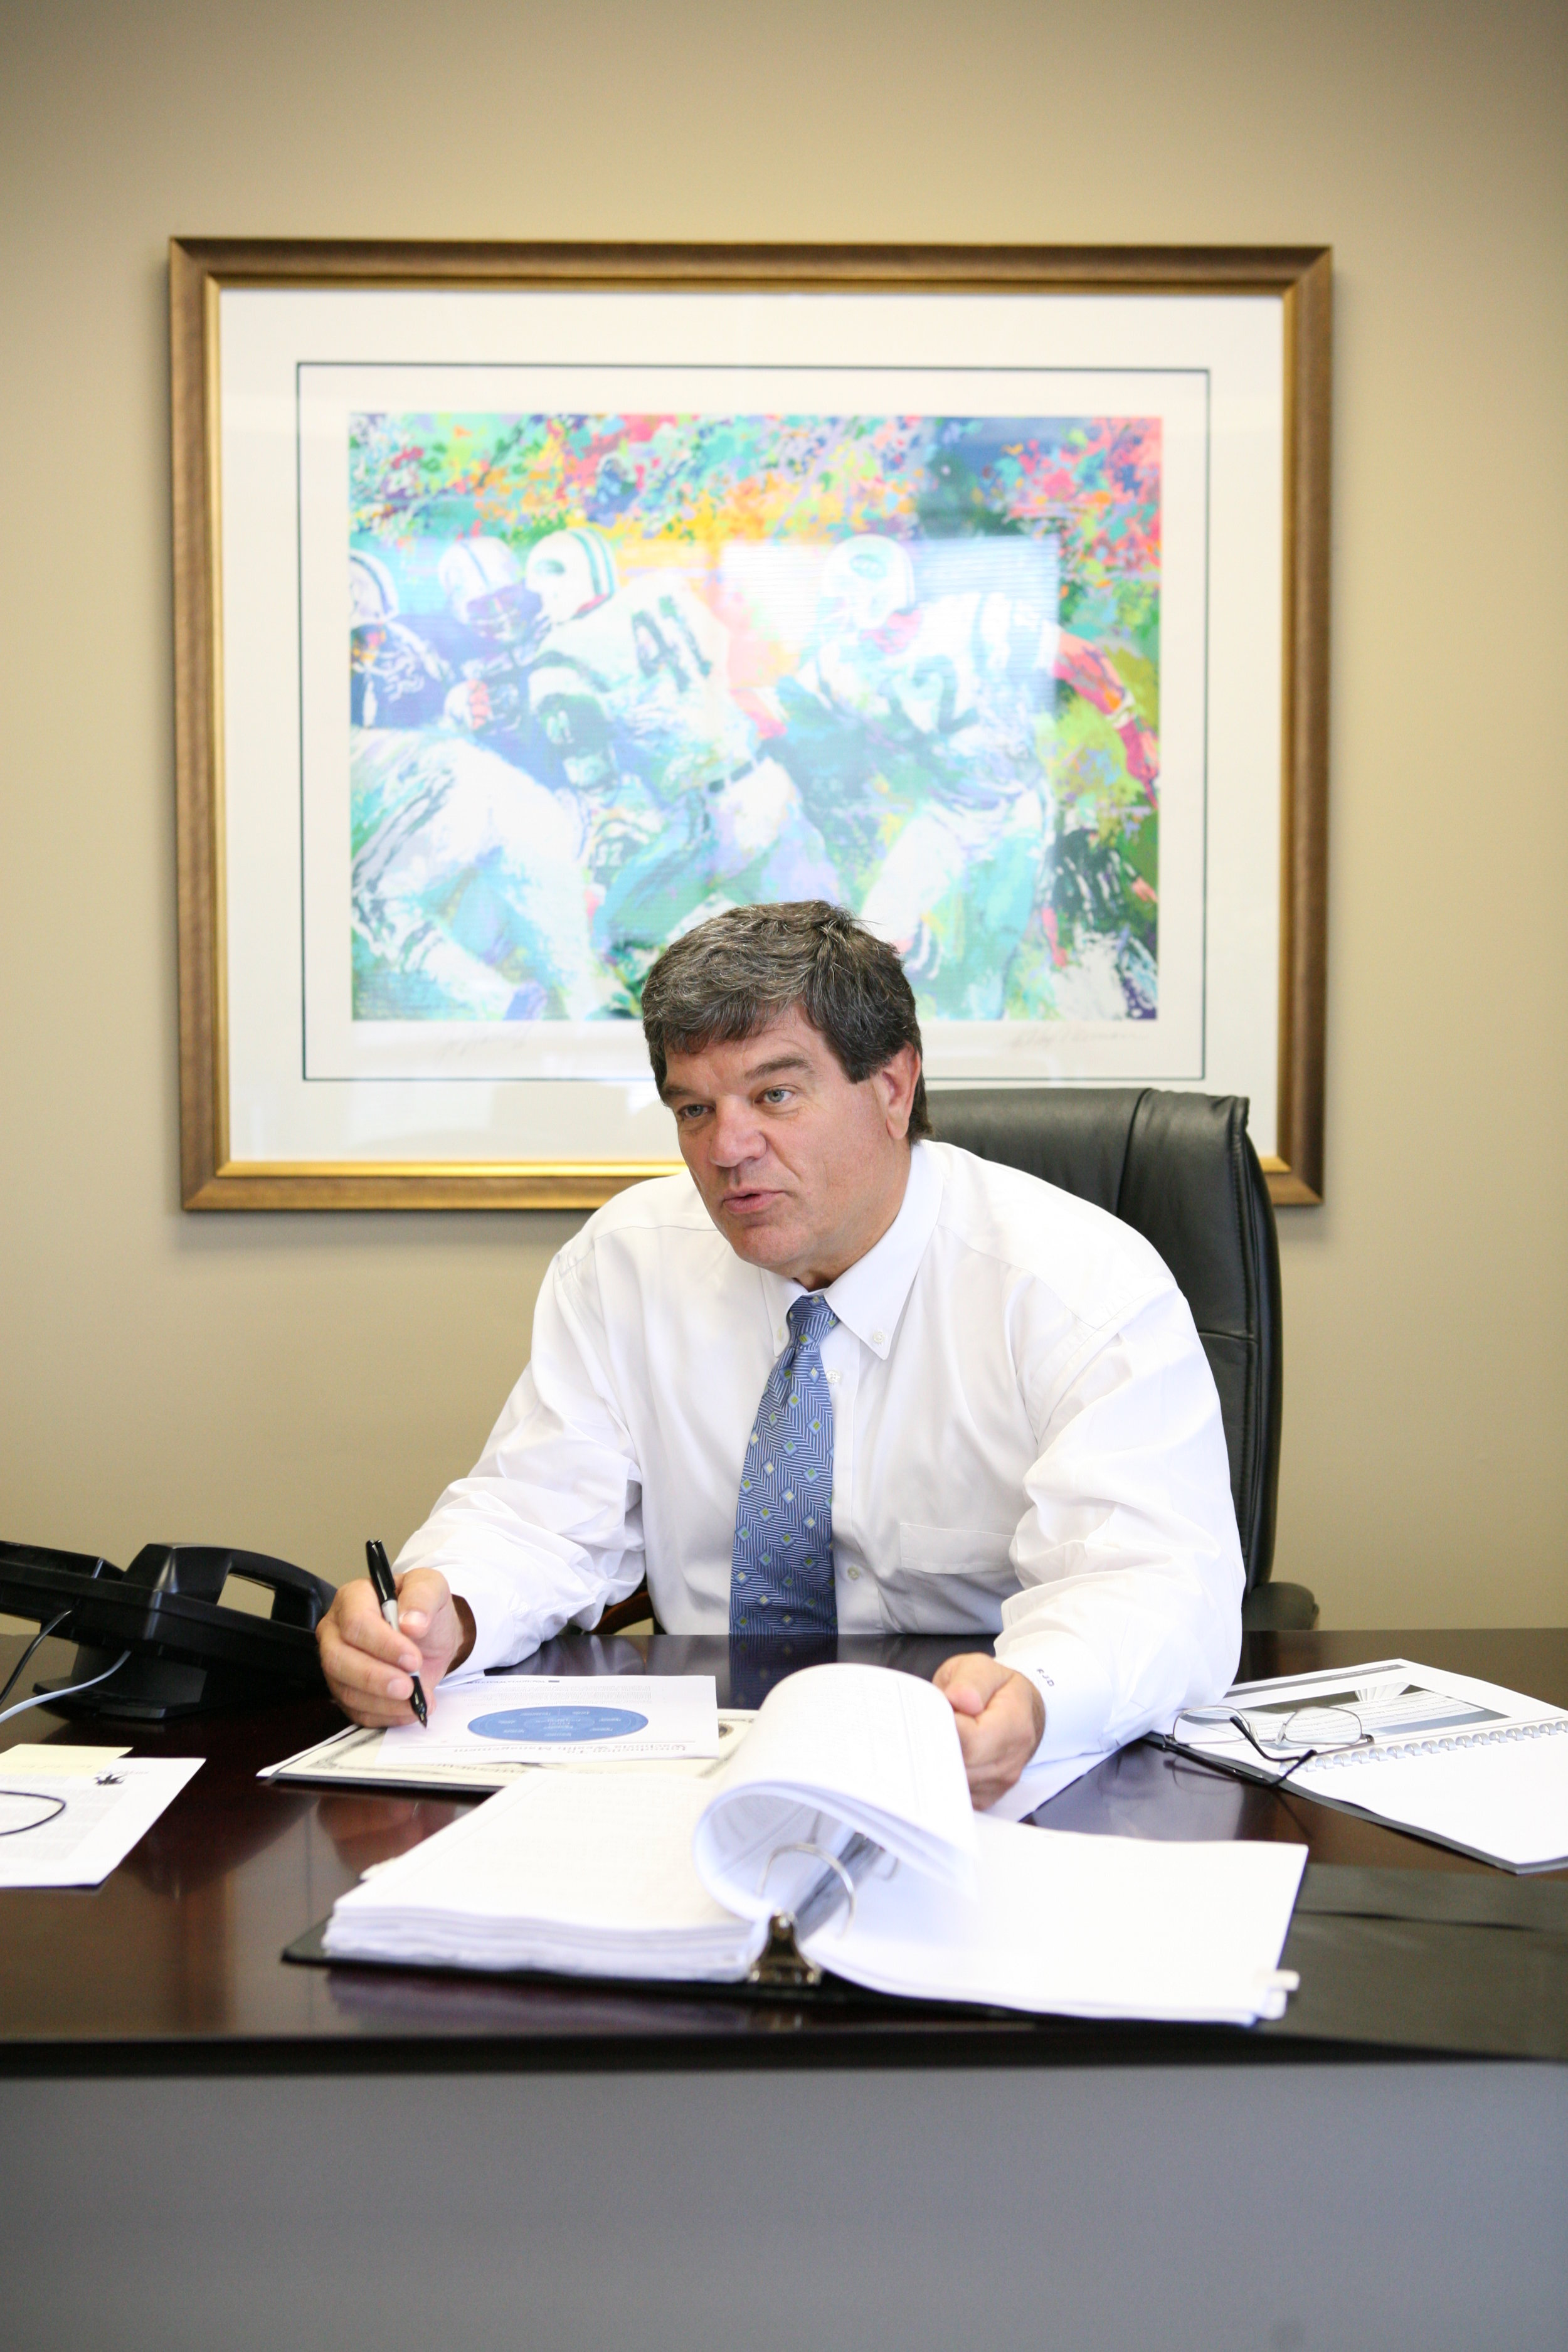 Picture of Roger J.  Dodd at his desk.